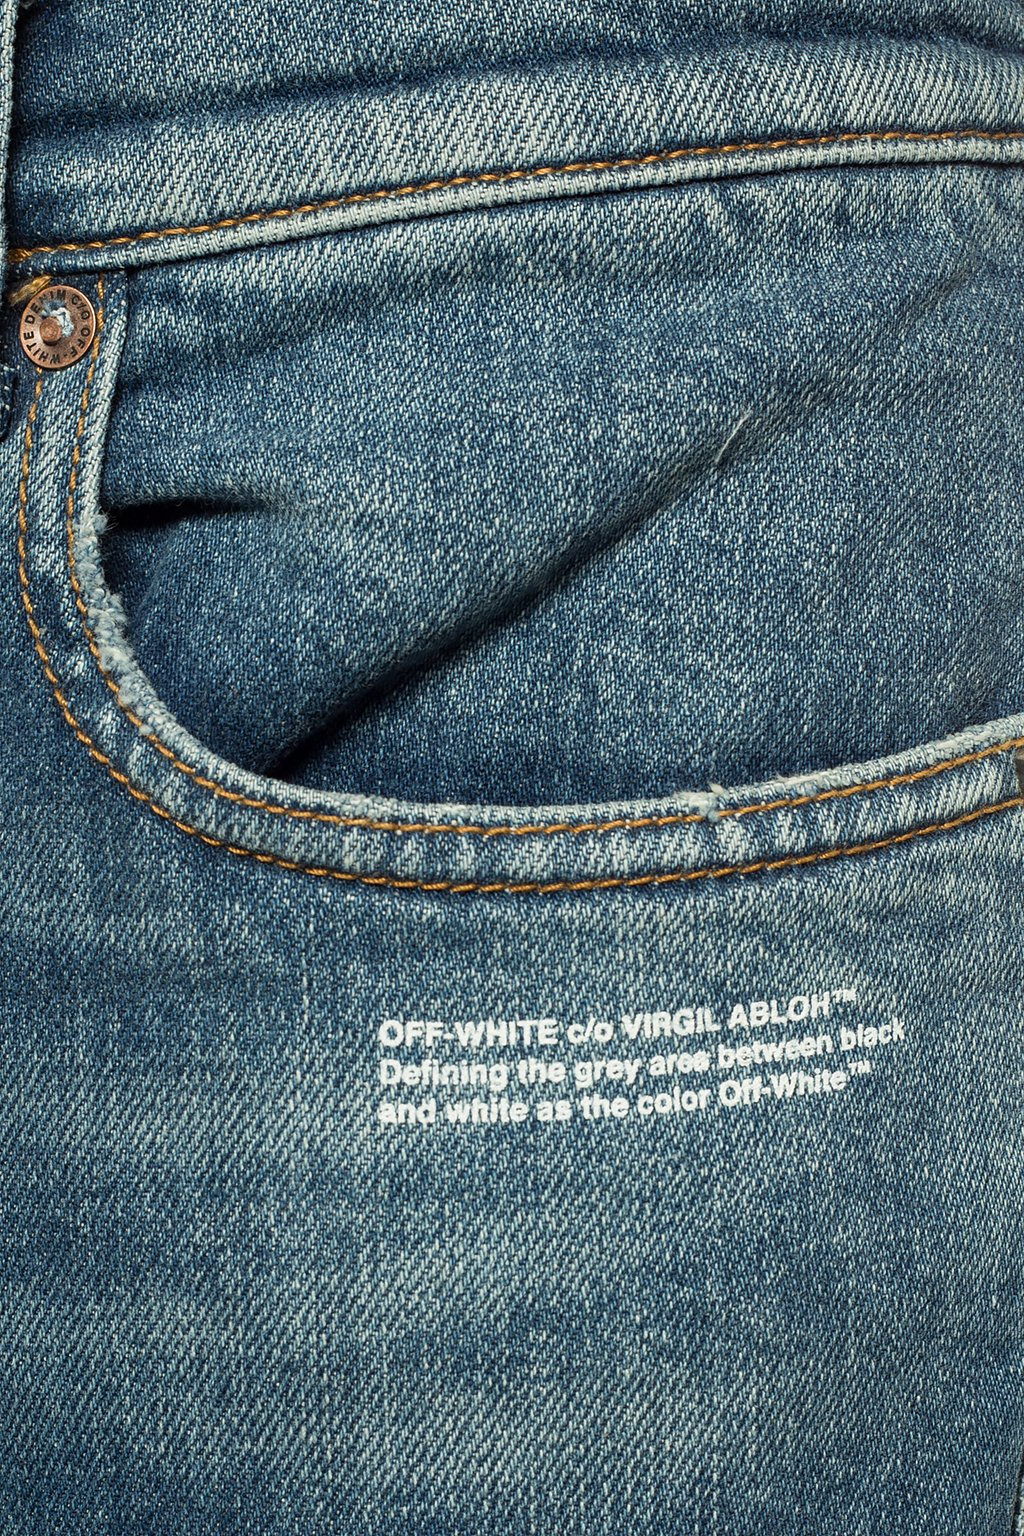 Off-White Logo-printed jeans